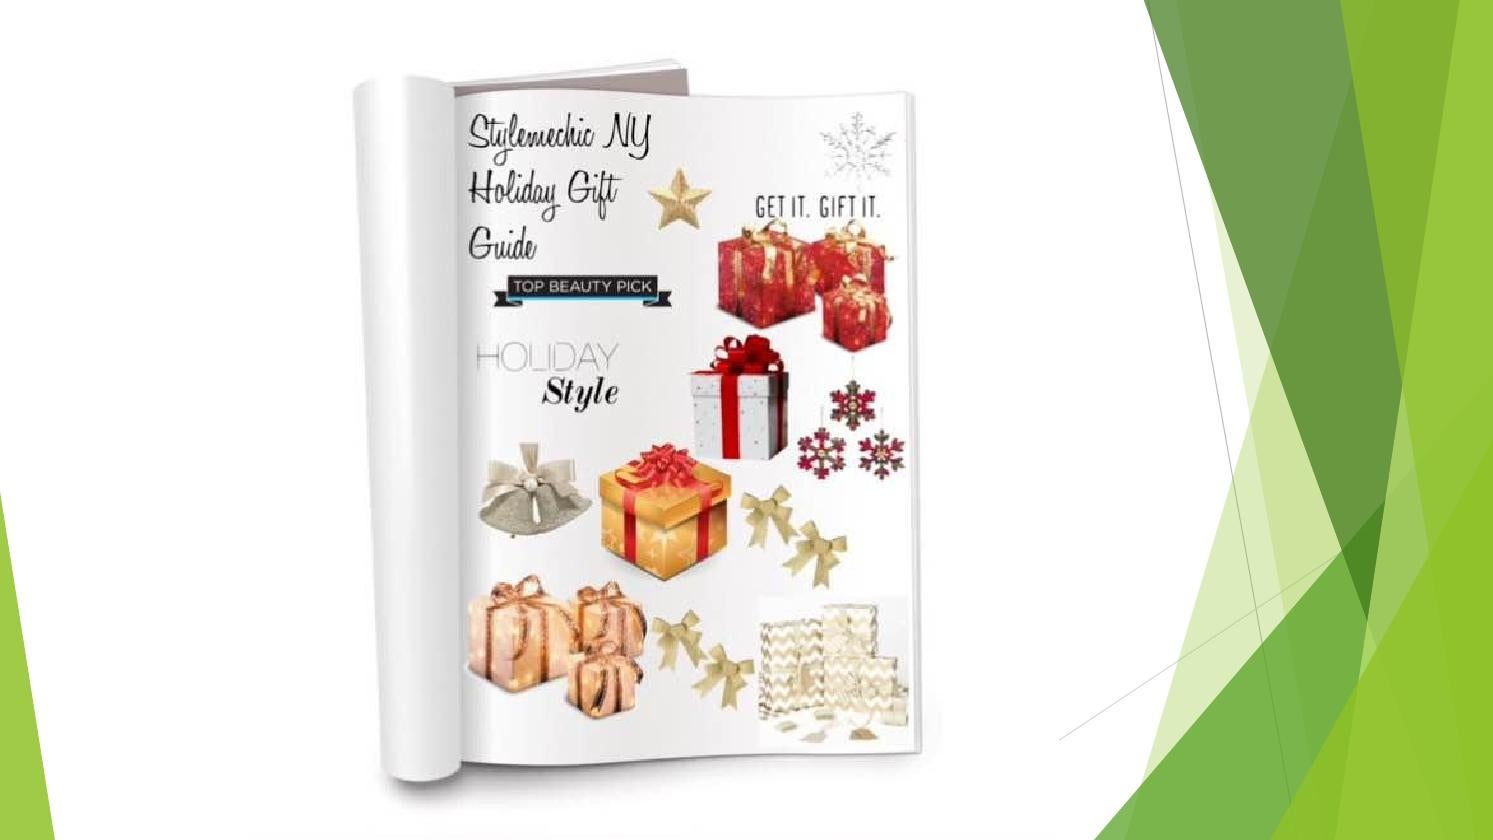 STYLEMECHIC NY HOLIDAY GIFT GUIDE